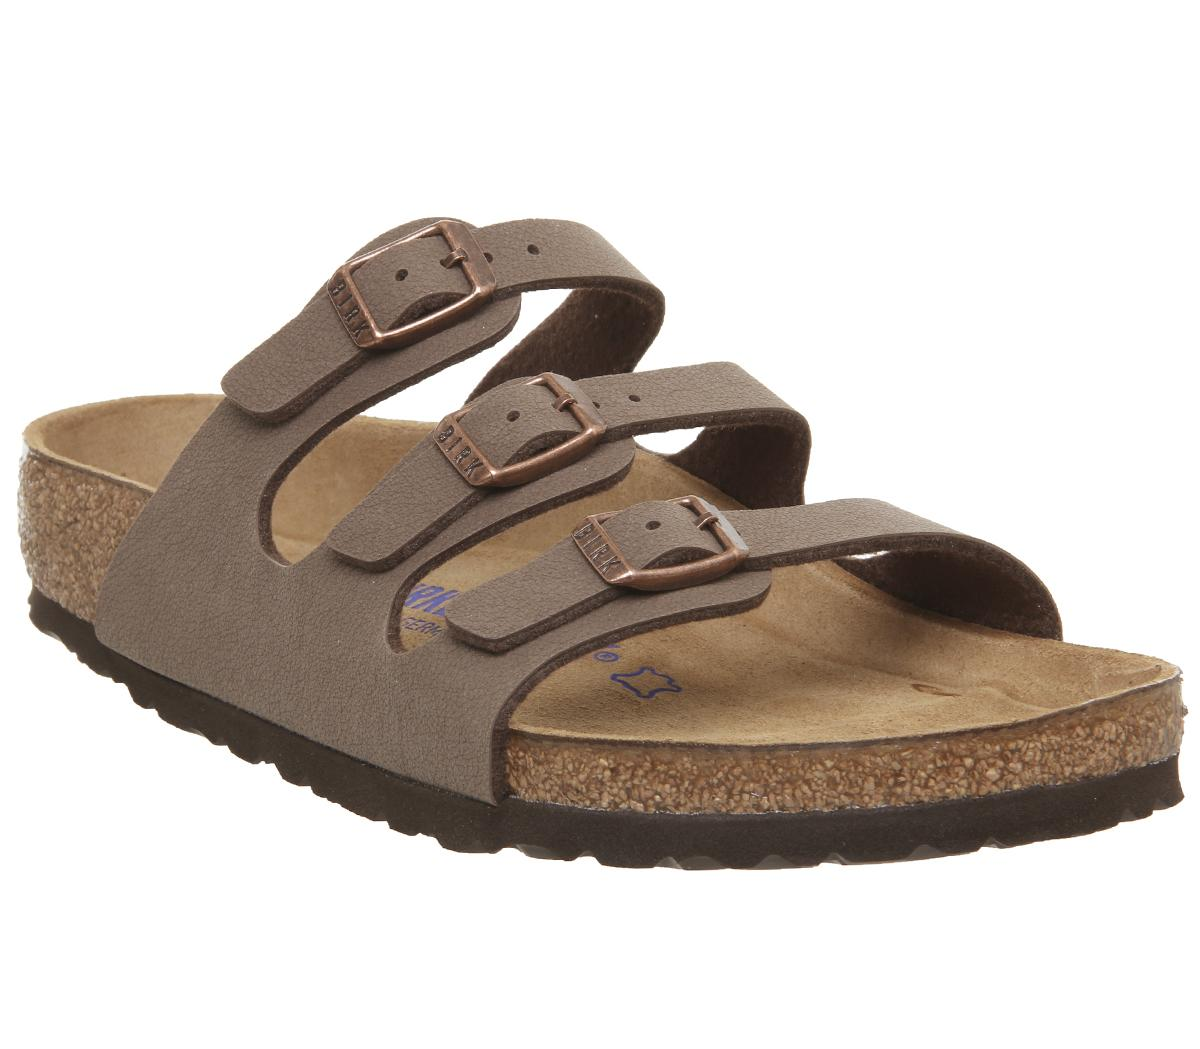 Birkenstock Florida Three Strap Sandals Mocha Sandalen